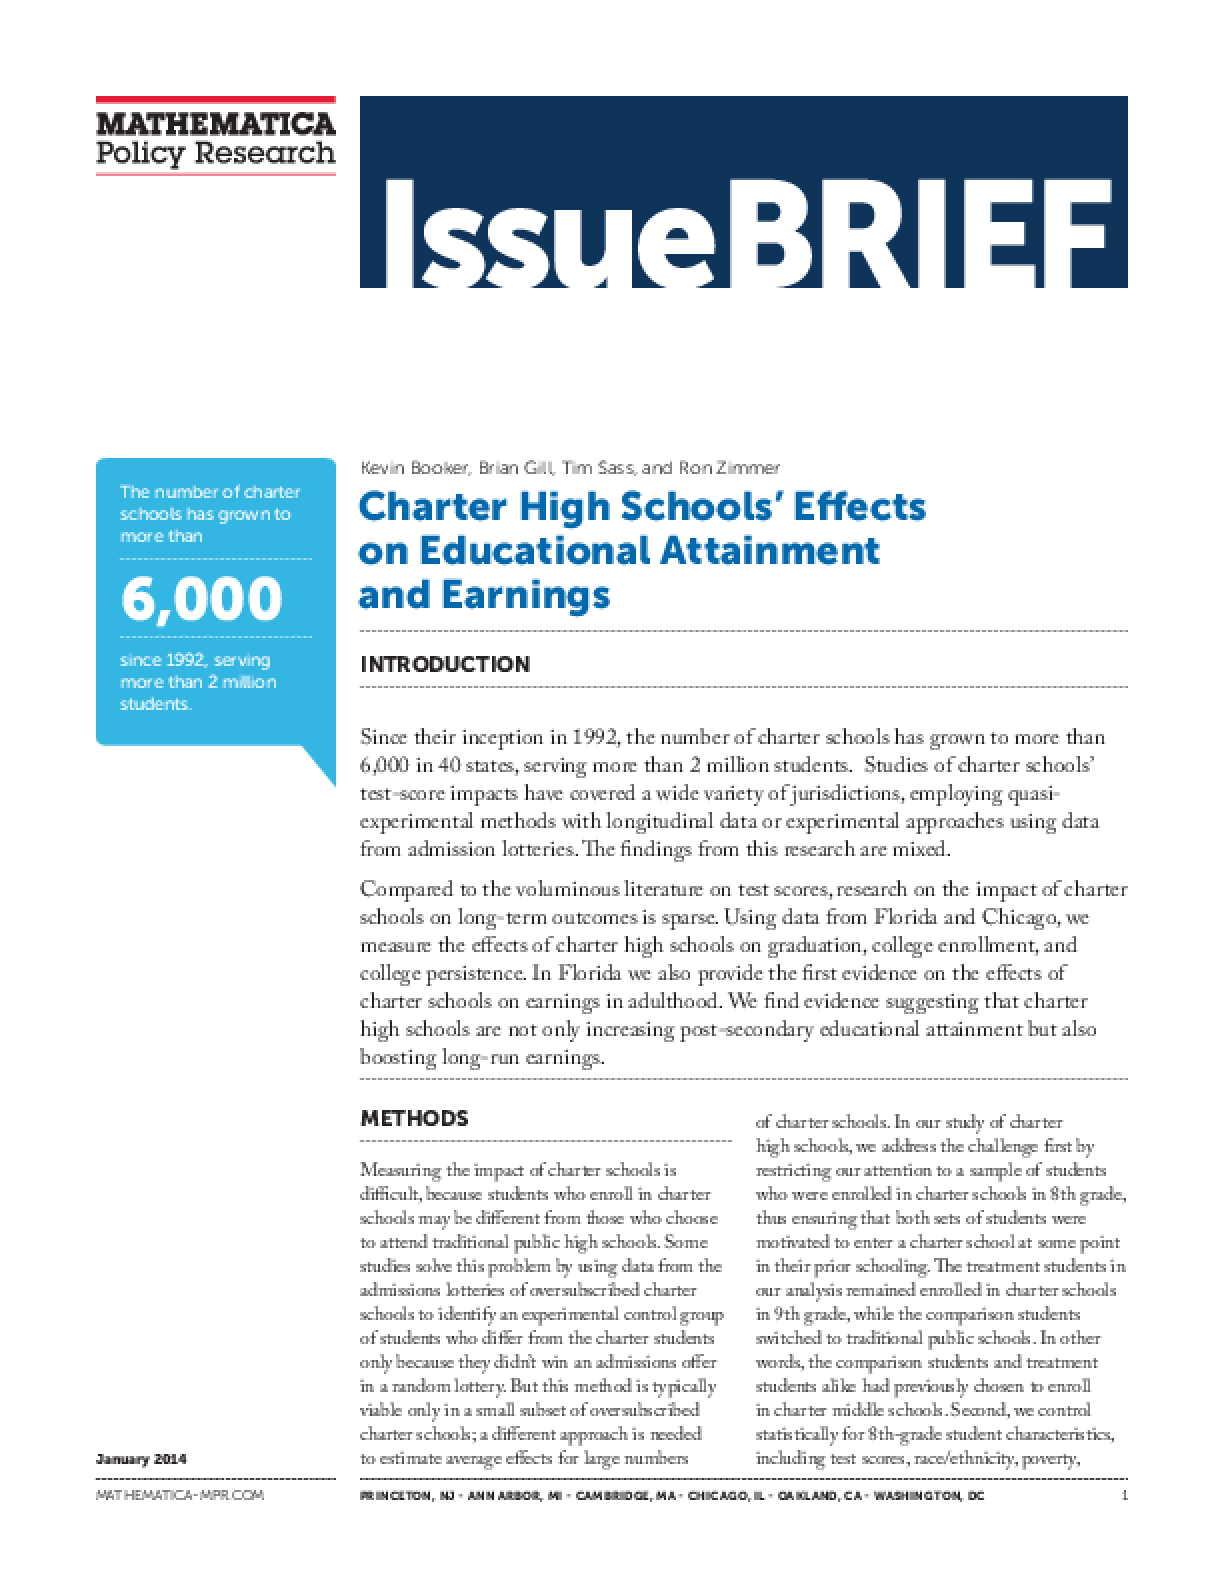 Charter High Schools' Effects on Educational Attainment and Earnings